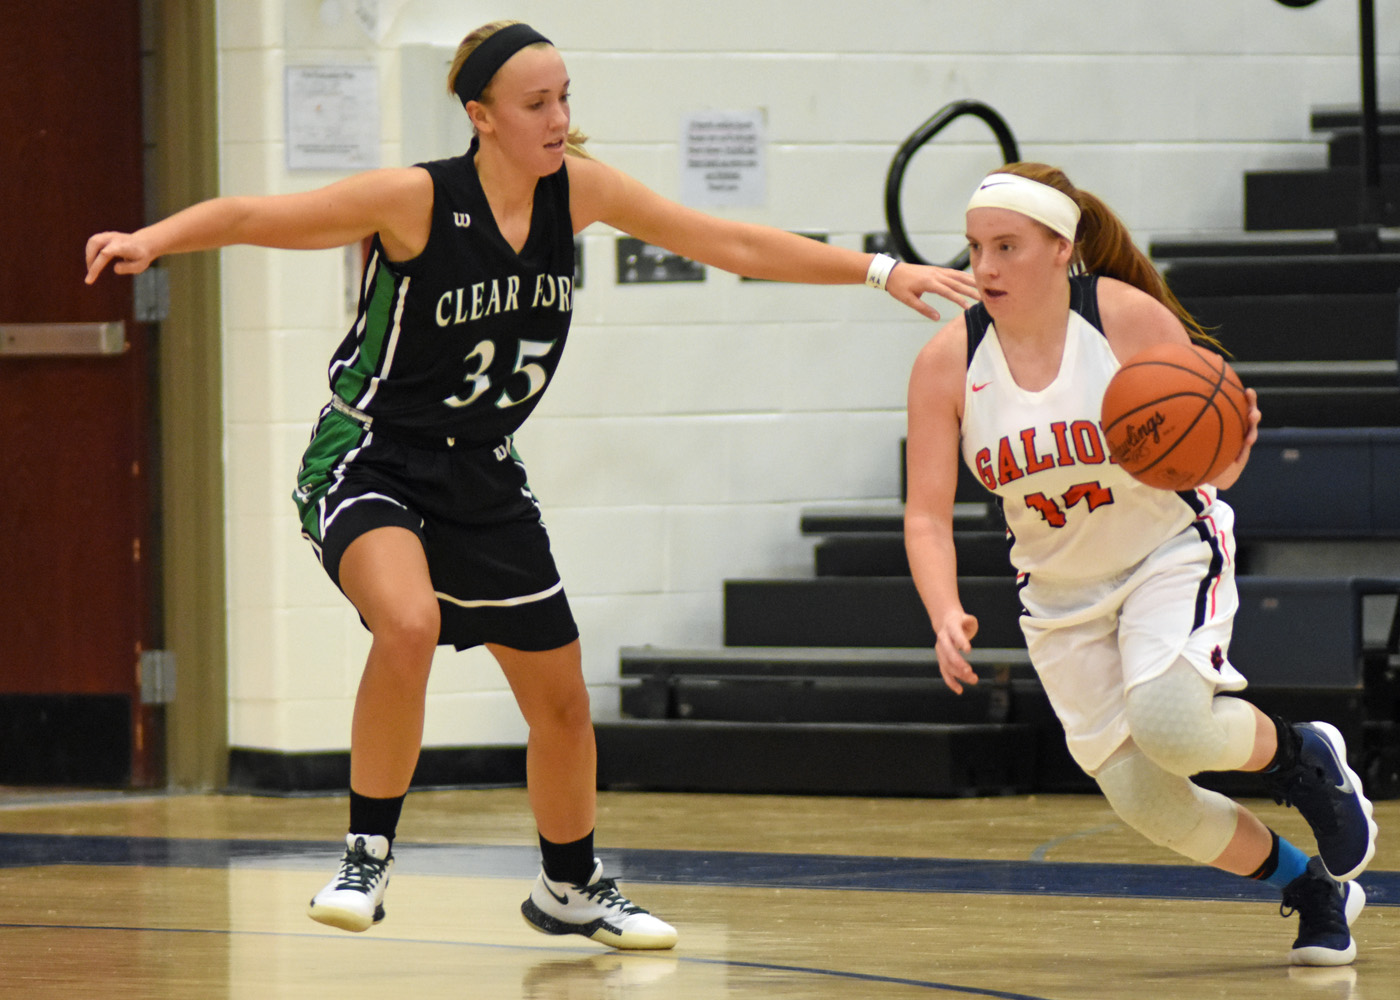 clear fork girls Galion hosted clear fork in and moac girls basketball game friday night photo by don tudor galion hosted clear fork in and moac girls basketball game friday night.